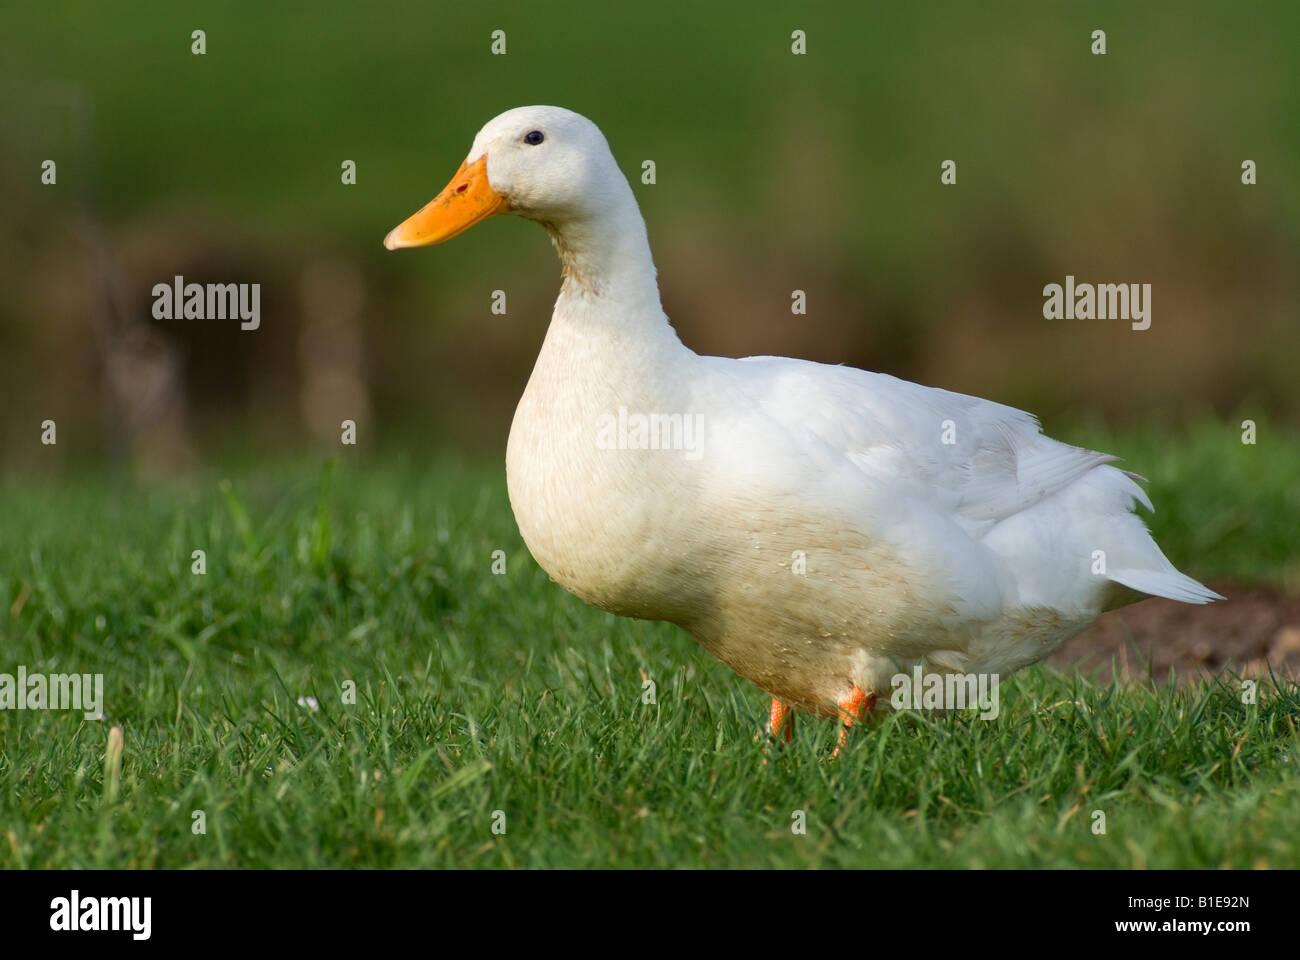 A white duck against green grass - Stock Image